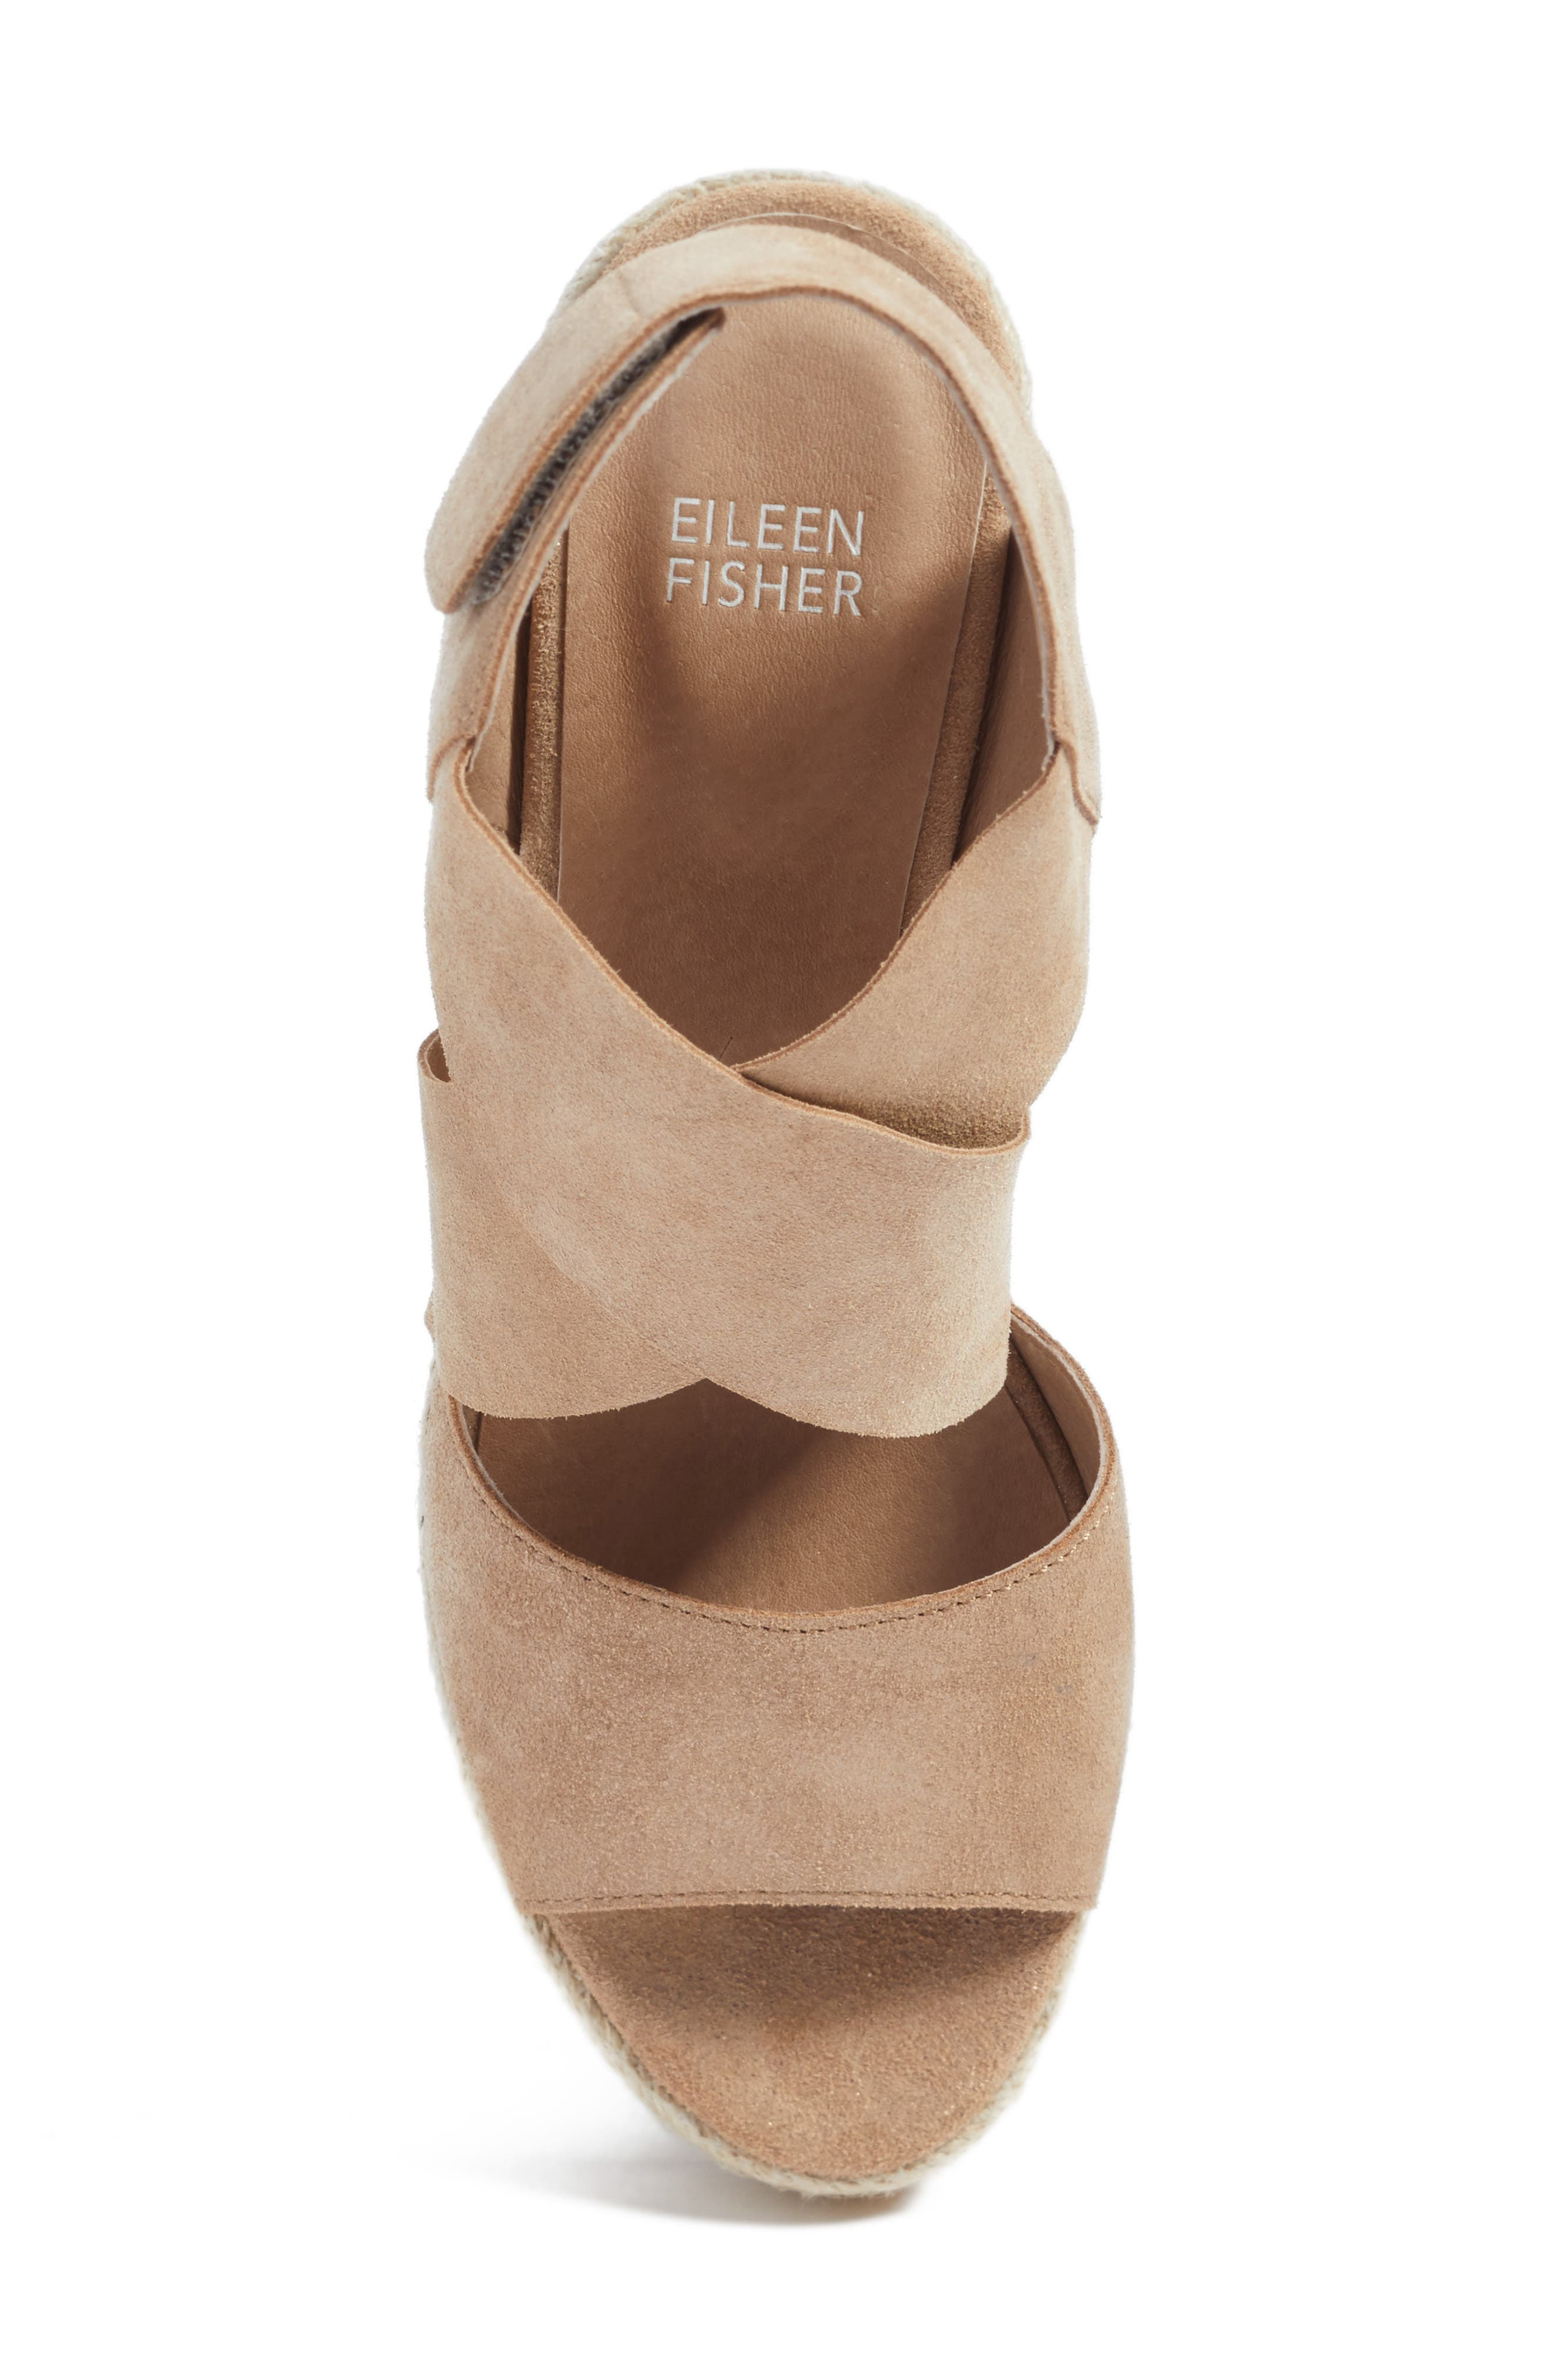 'Willow' Espadrille Wedge Sandal,                             Alternate thumbnail 5, color,                             LIGHT GOLD STARRY LEATHER